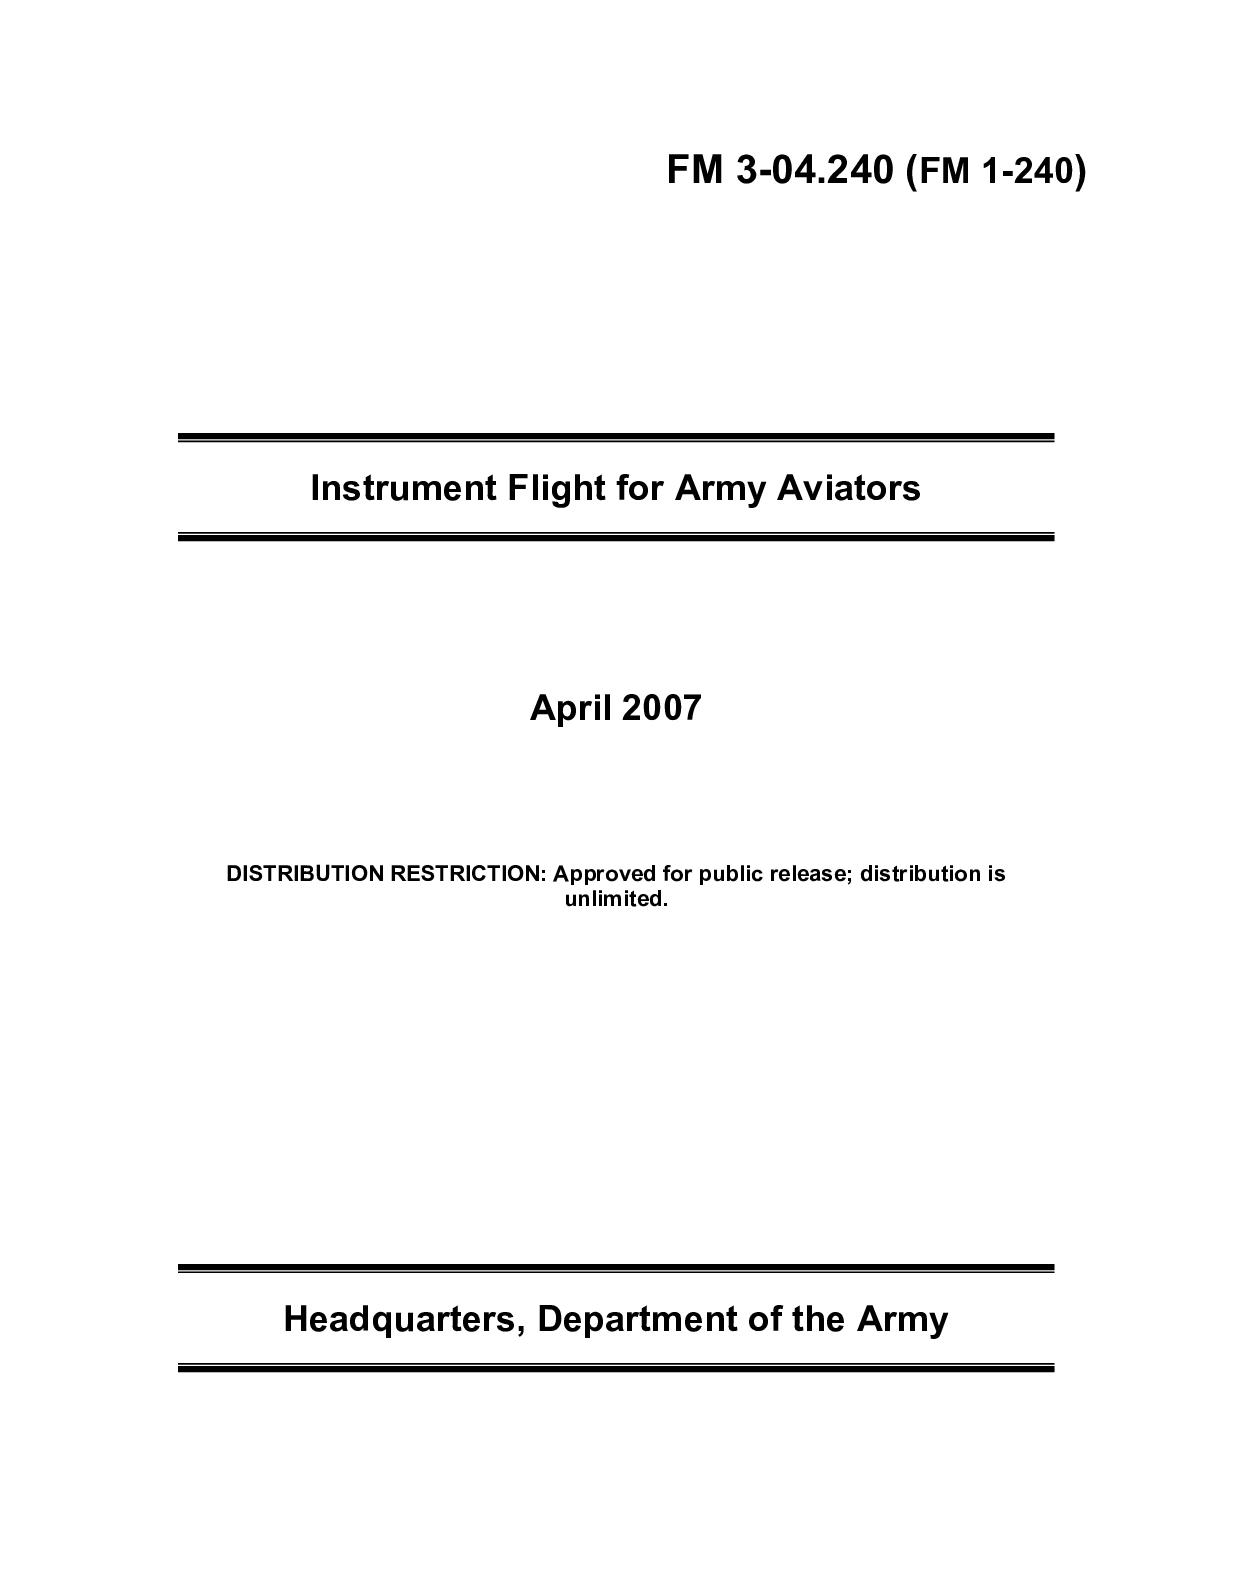 Calaméo - (e Book - English - Military) US Army - Field Manual FM 3 04 240  - Instrument Flight For Army Aviators Apr2007